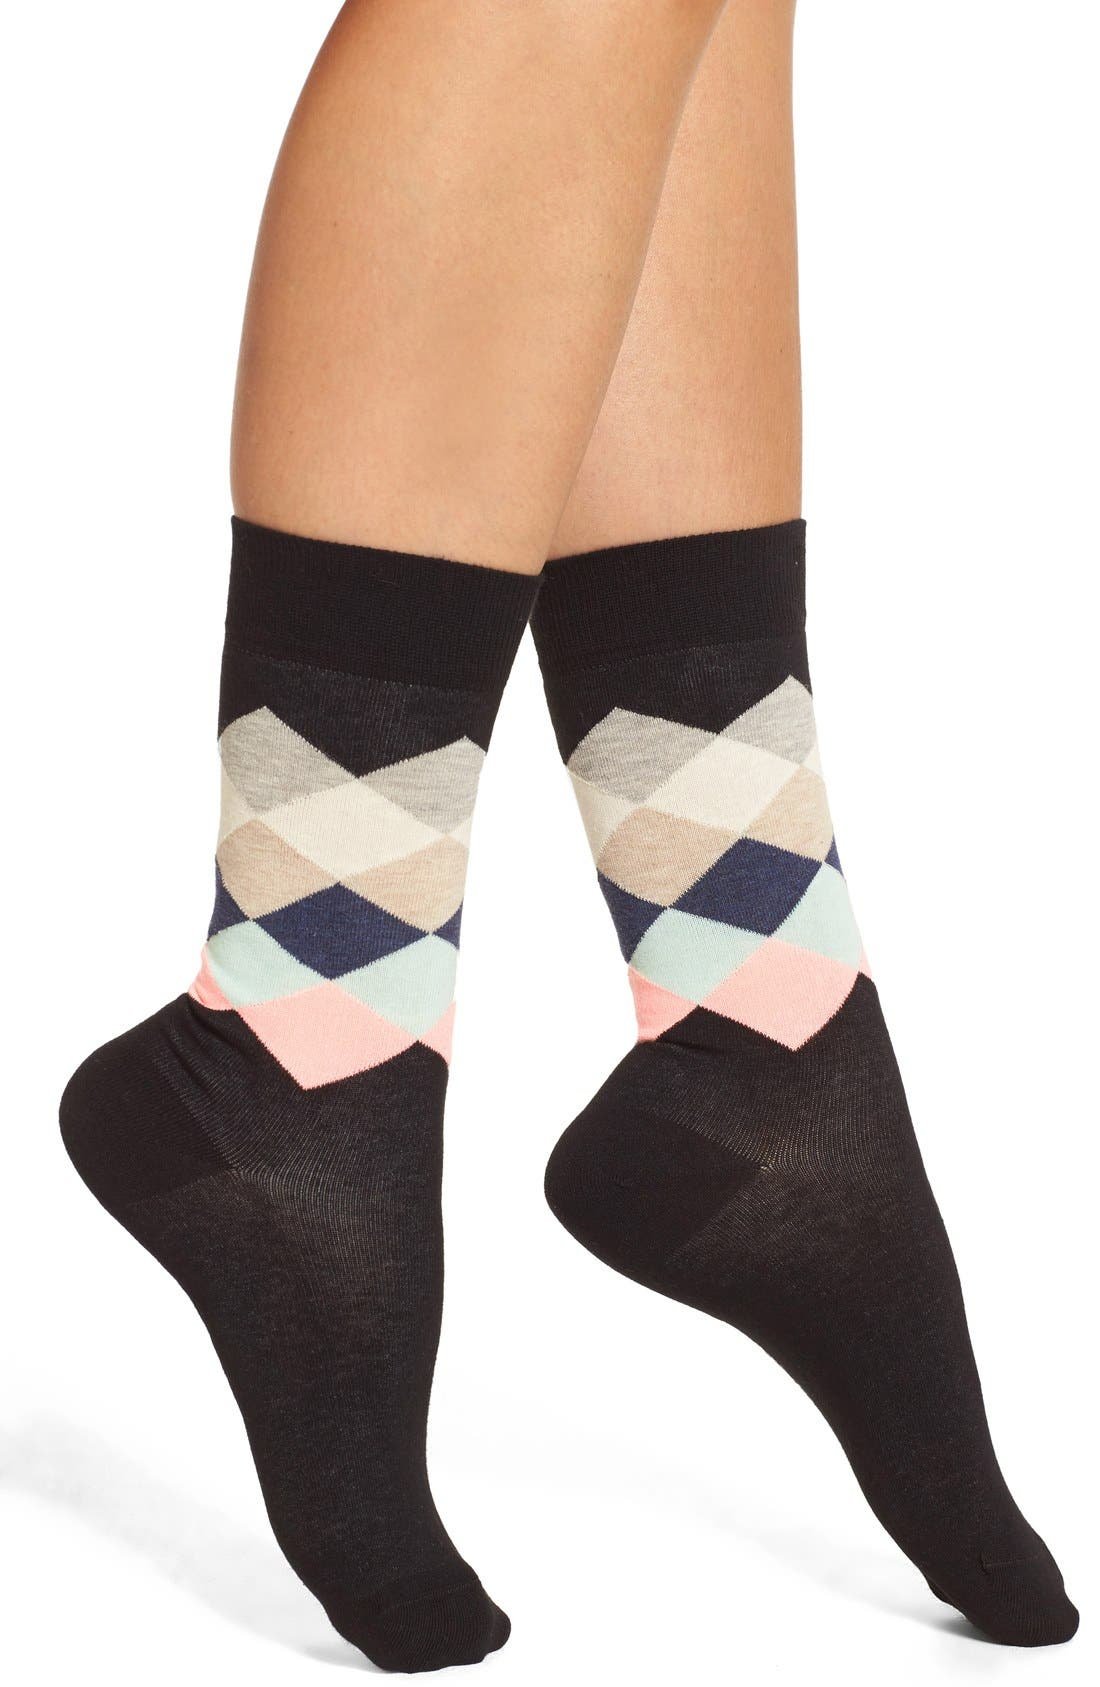 Happy Socks 'Faded Diamond' Crew Socks